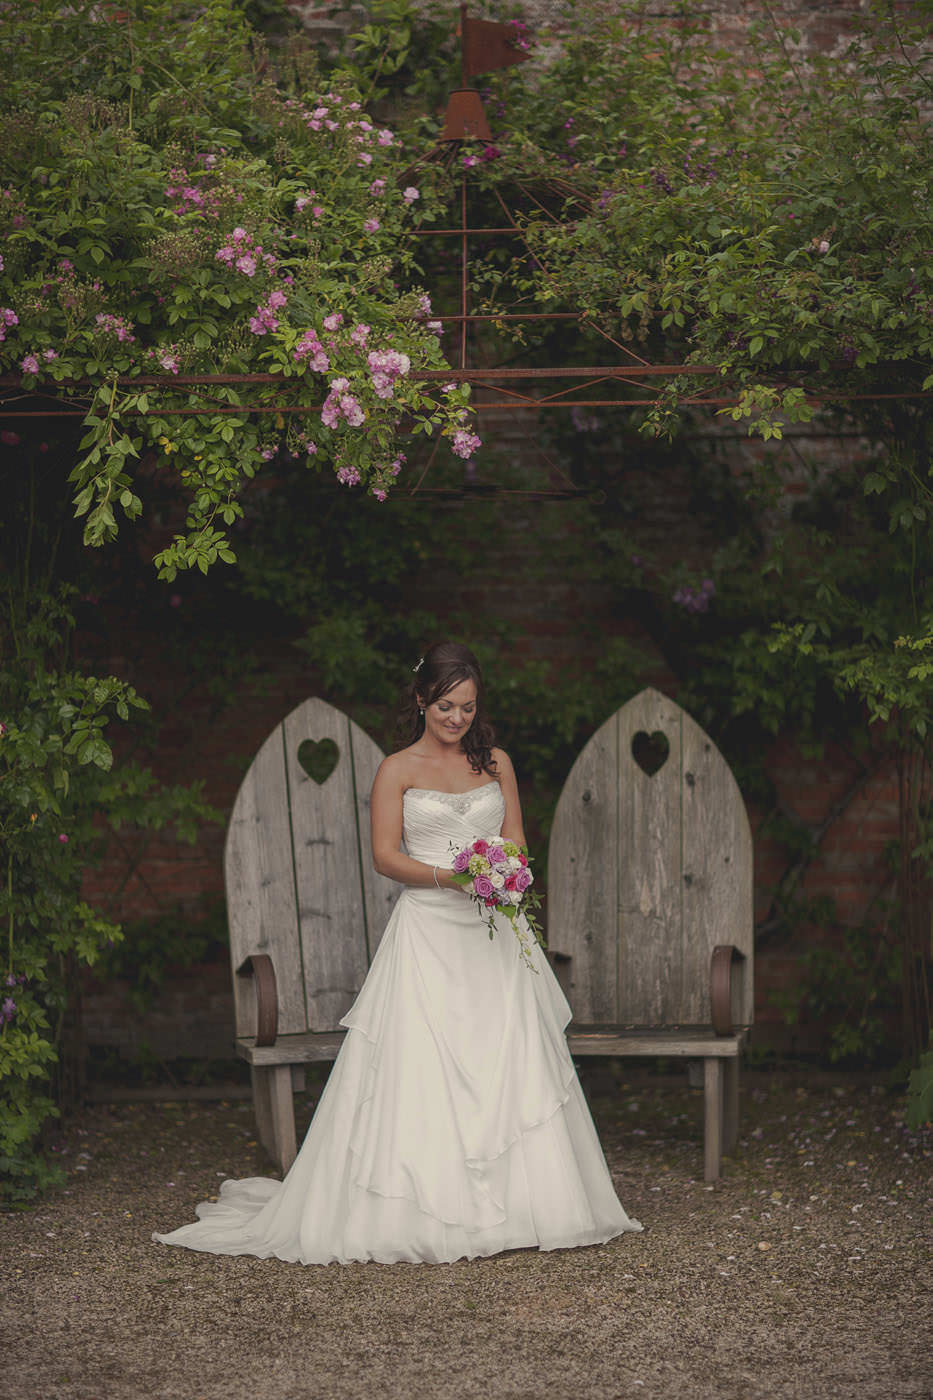 chrissarah walled garden midhurst wedding photographer 0133